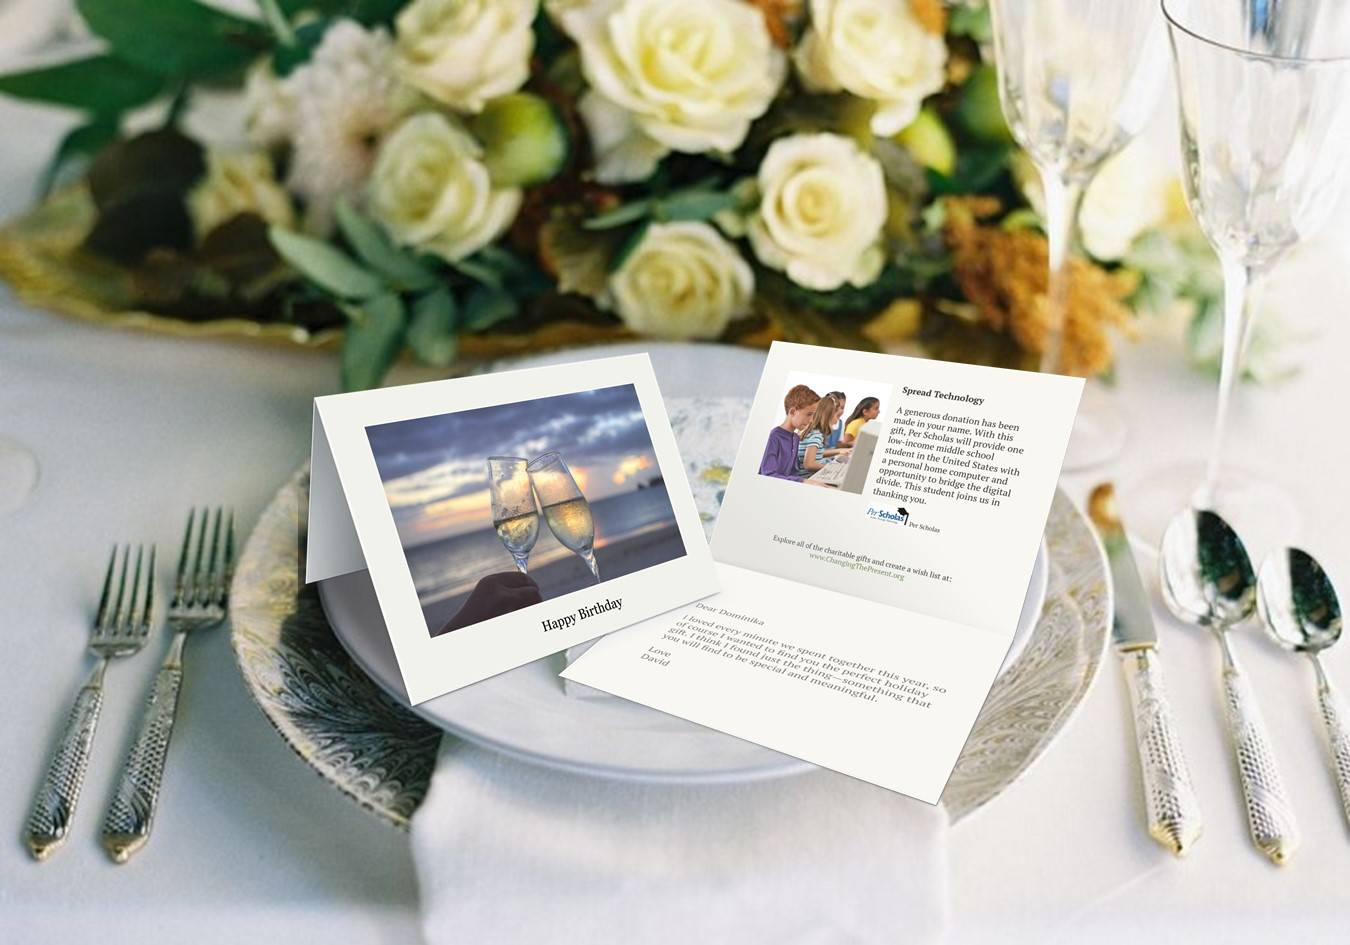 Wedding Page – Changing The Present